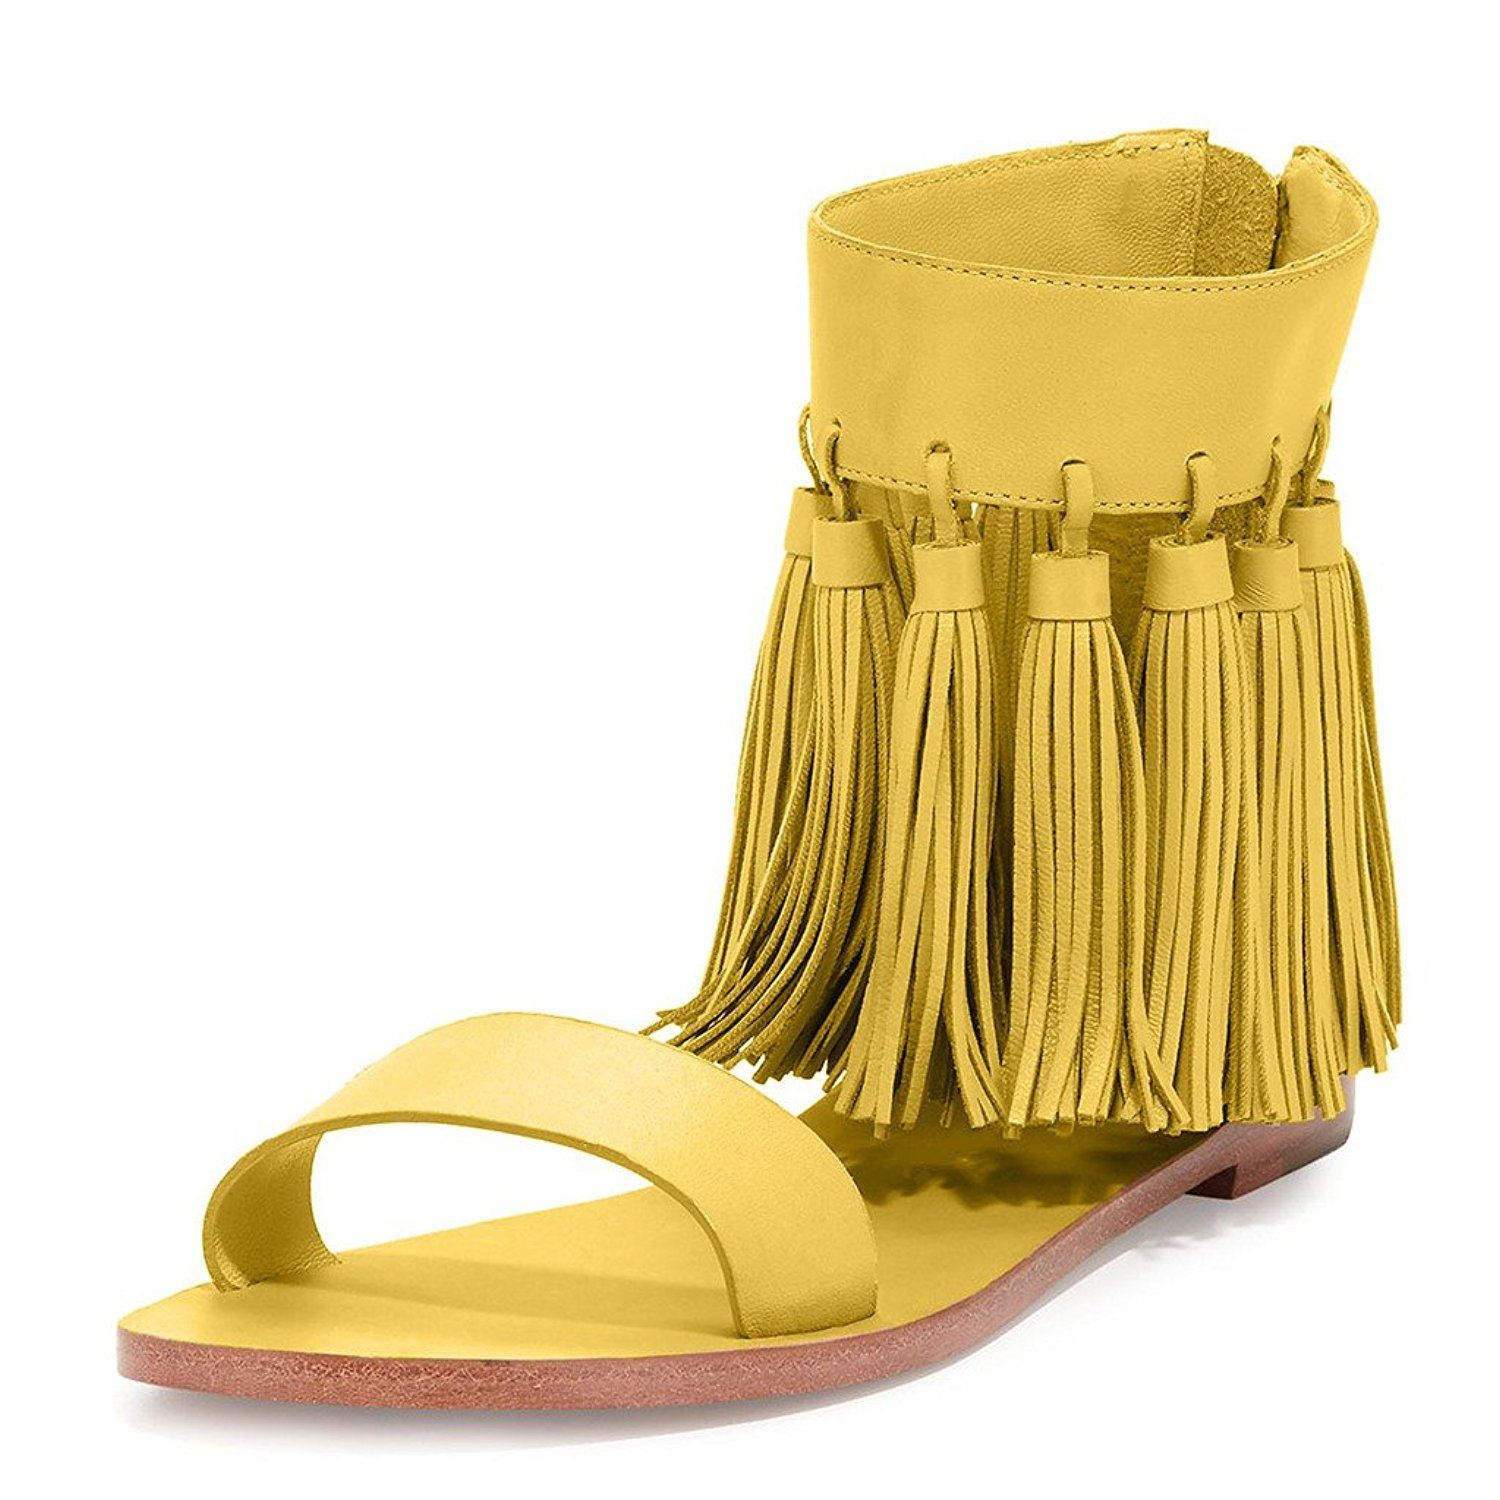 140761edd19 YDN Women Fringes Flats Tassels Open Toe Sandals Low-Heel Back Zipper Shoes      Find out more details by clicking the image - Lace up sandals